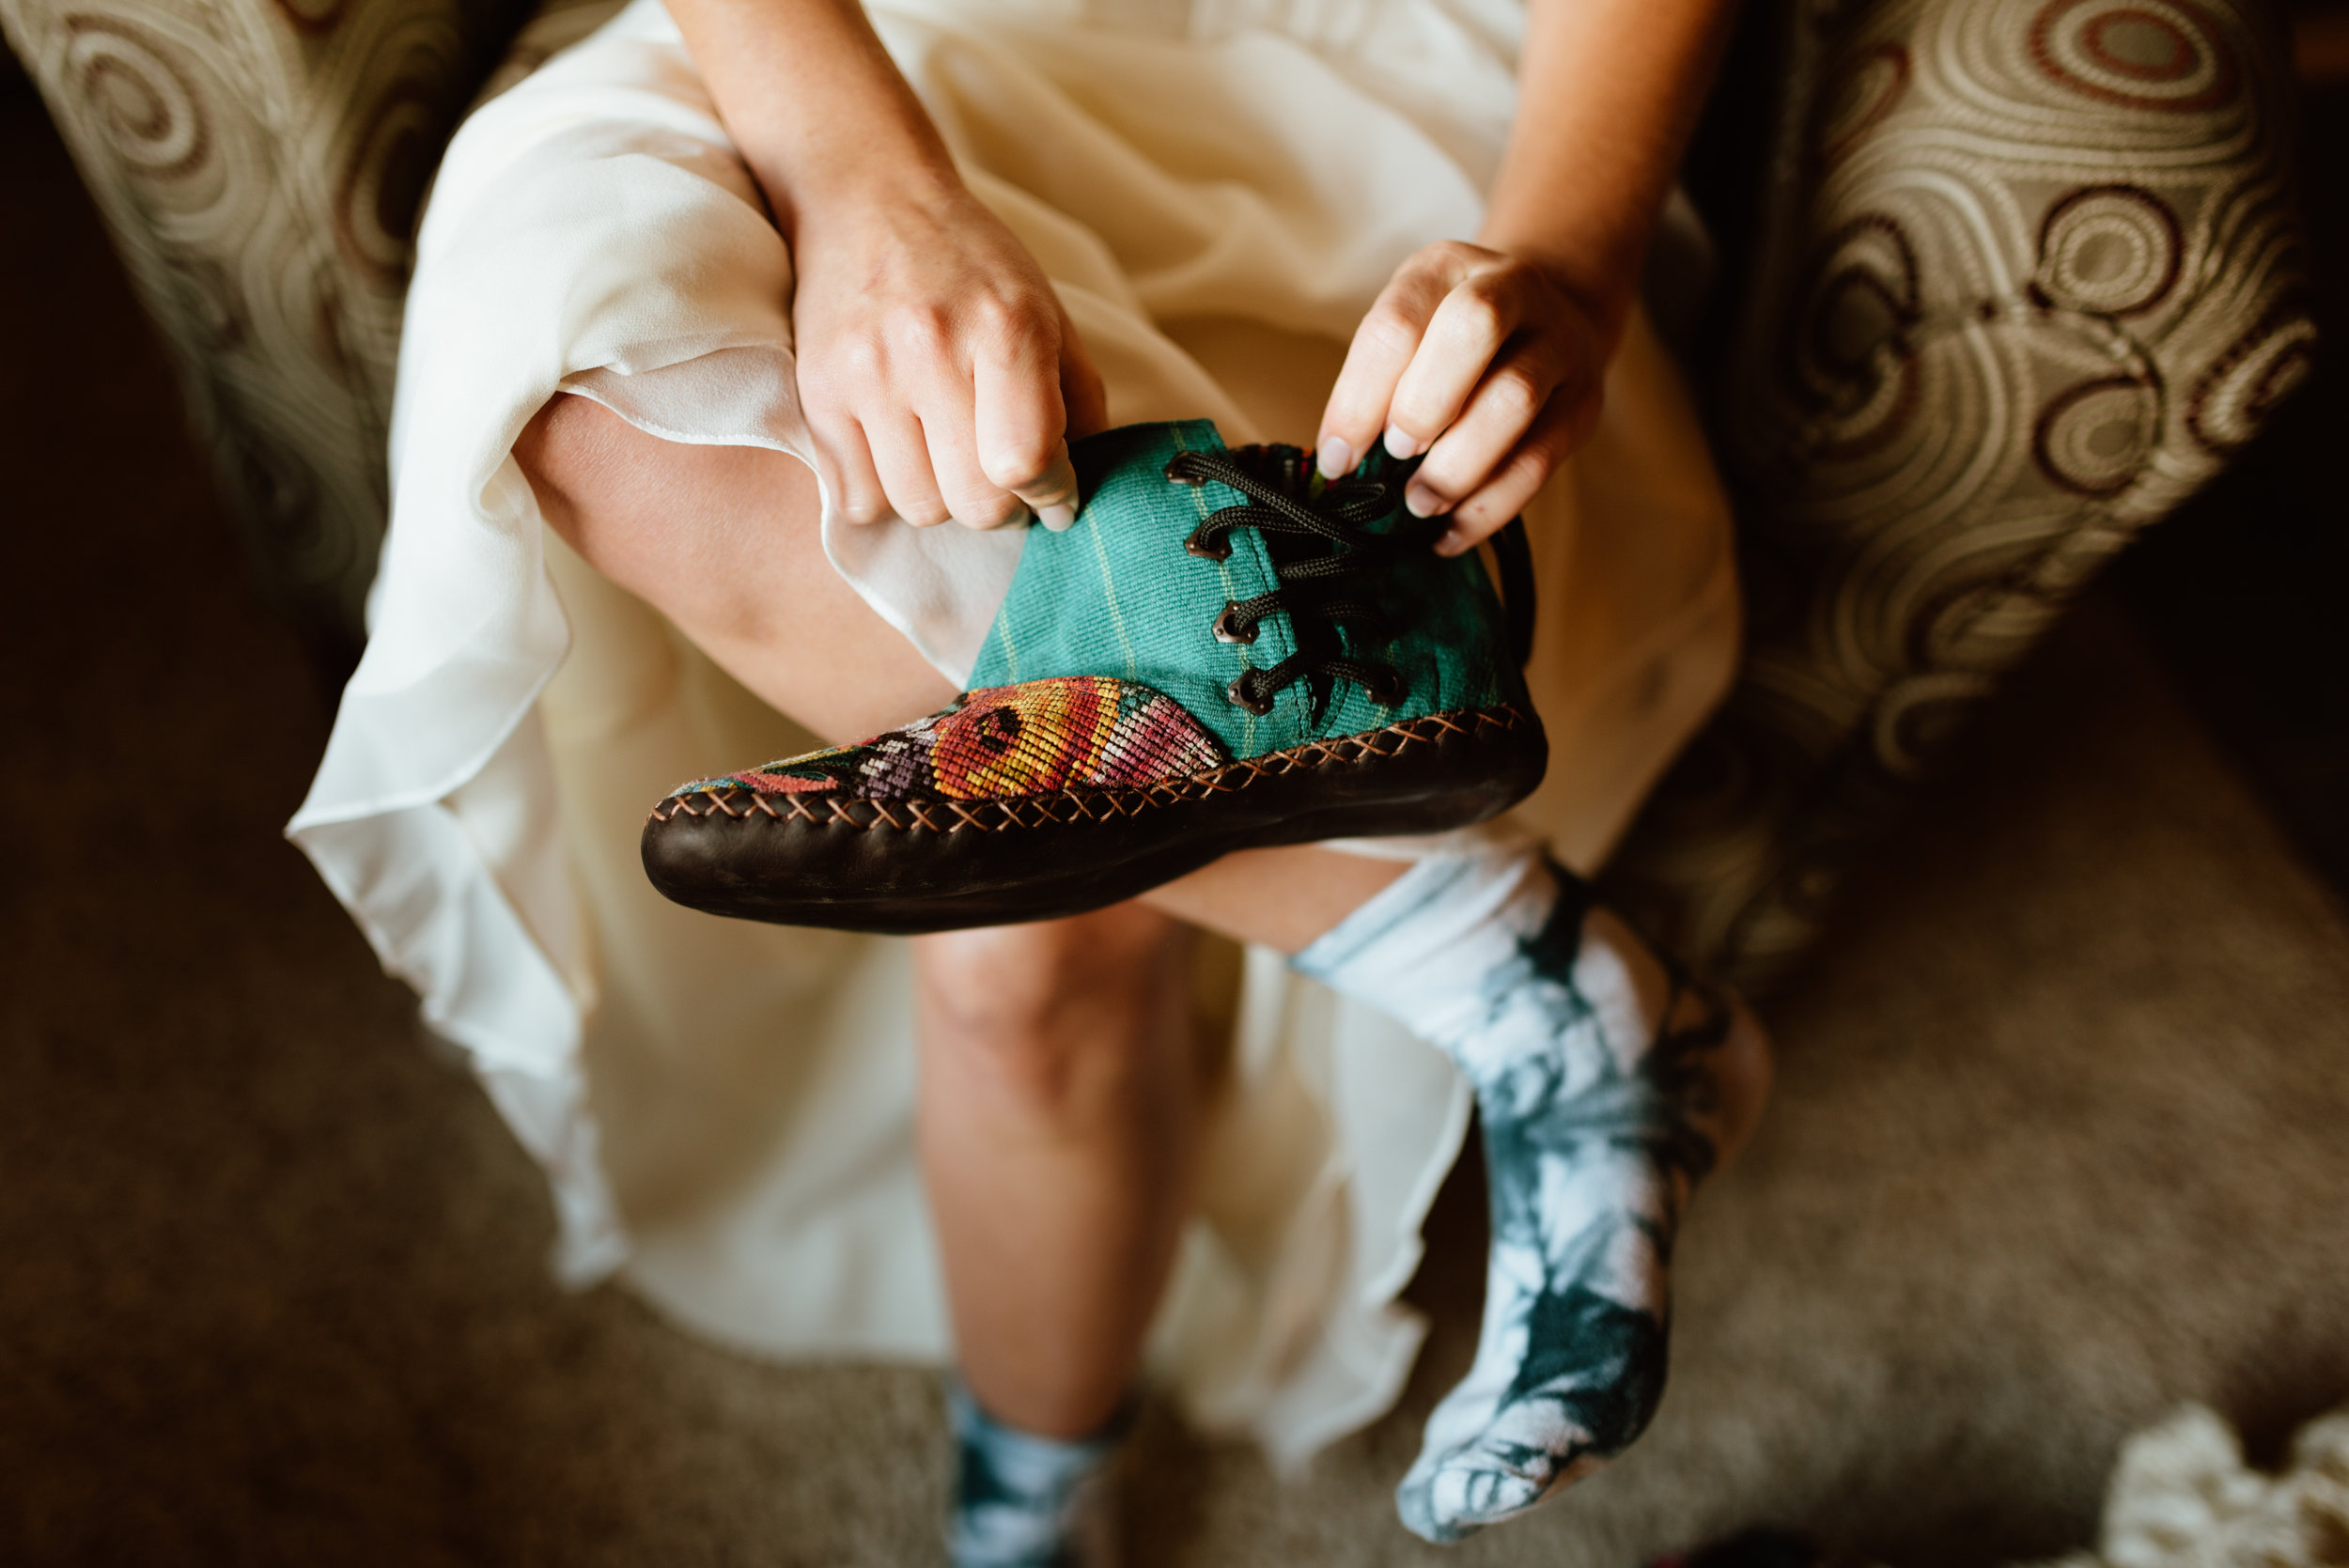 What a great idea to wear moccasins on your wedding day when heels aren't practical like this hiking elopement in RMNP! | Hiking boot wedding photos by Colorado elopement photographer, Maddie Mae.